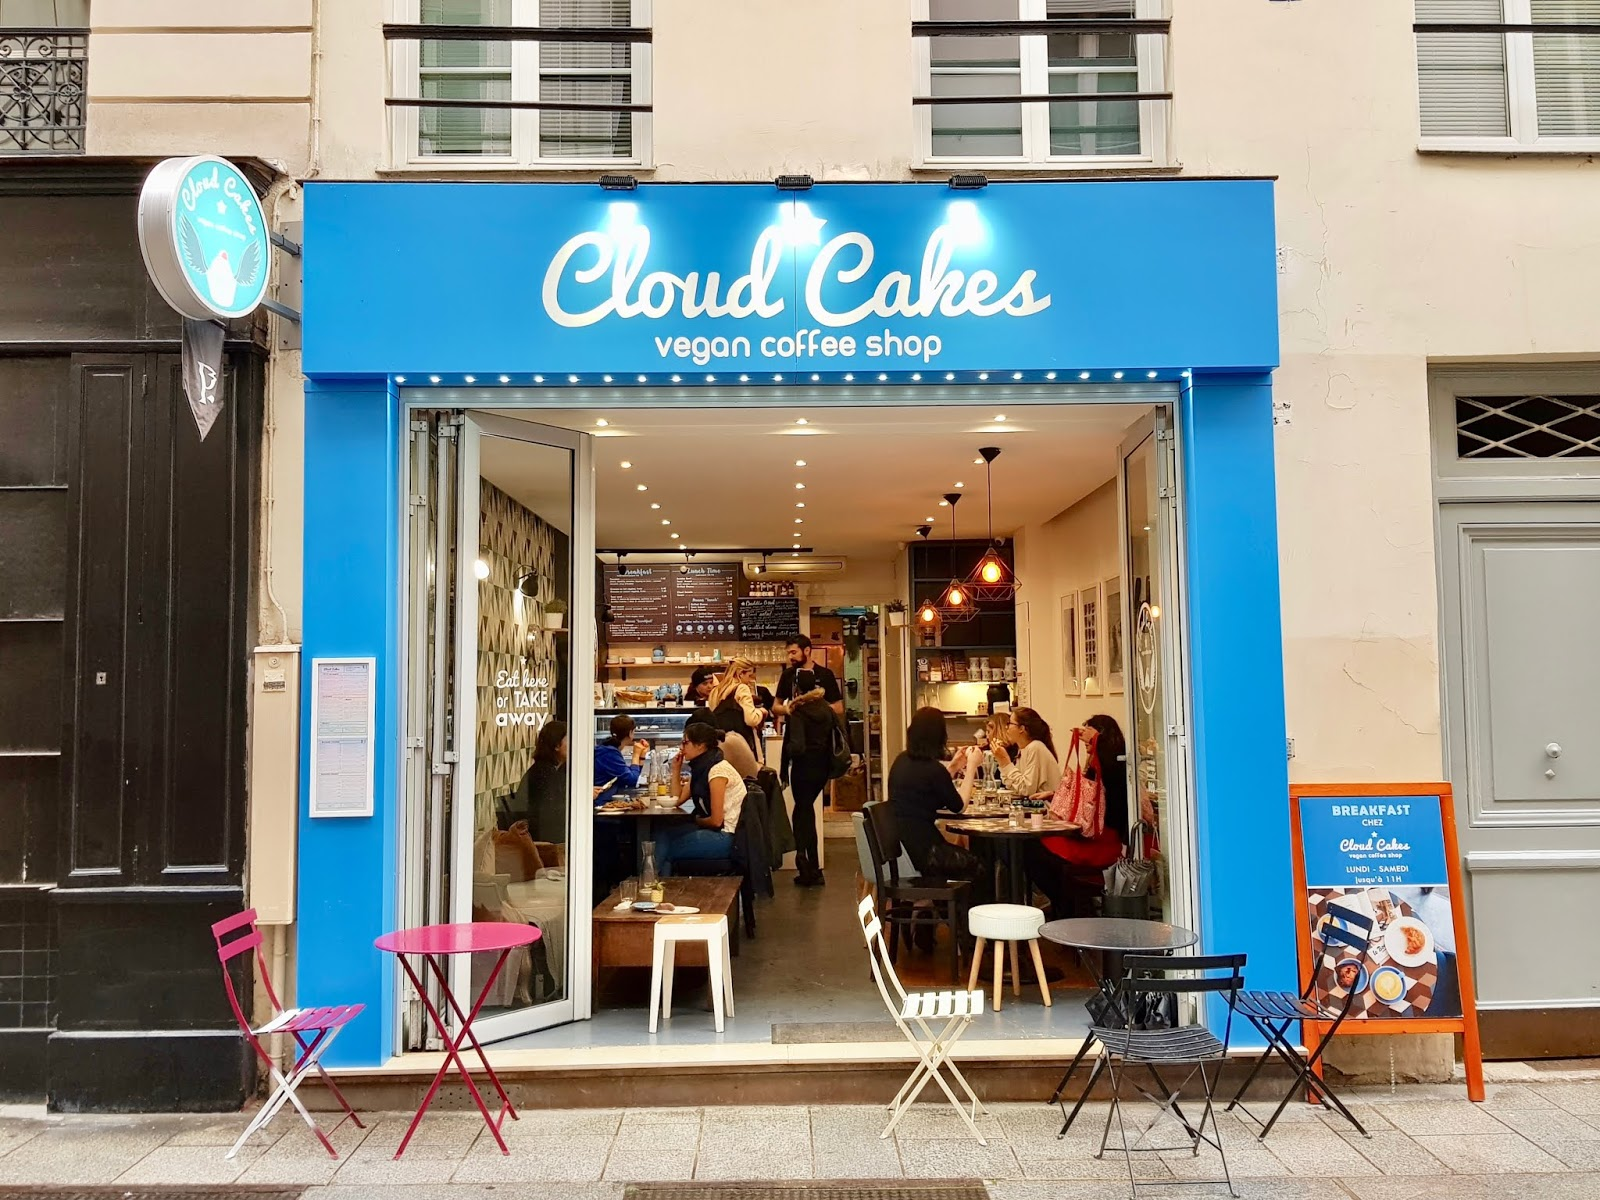 exterior of cloud cakes cafe in Paris, with blue signage